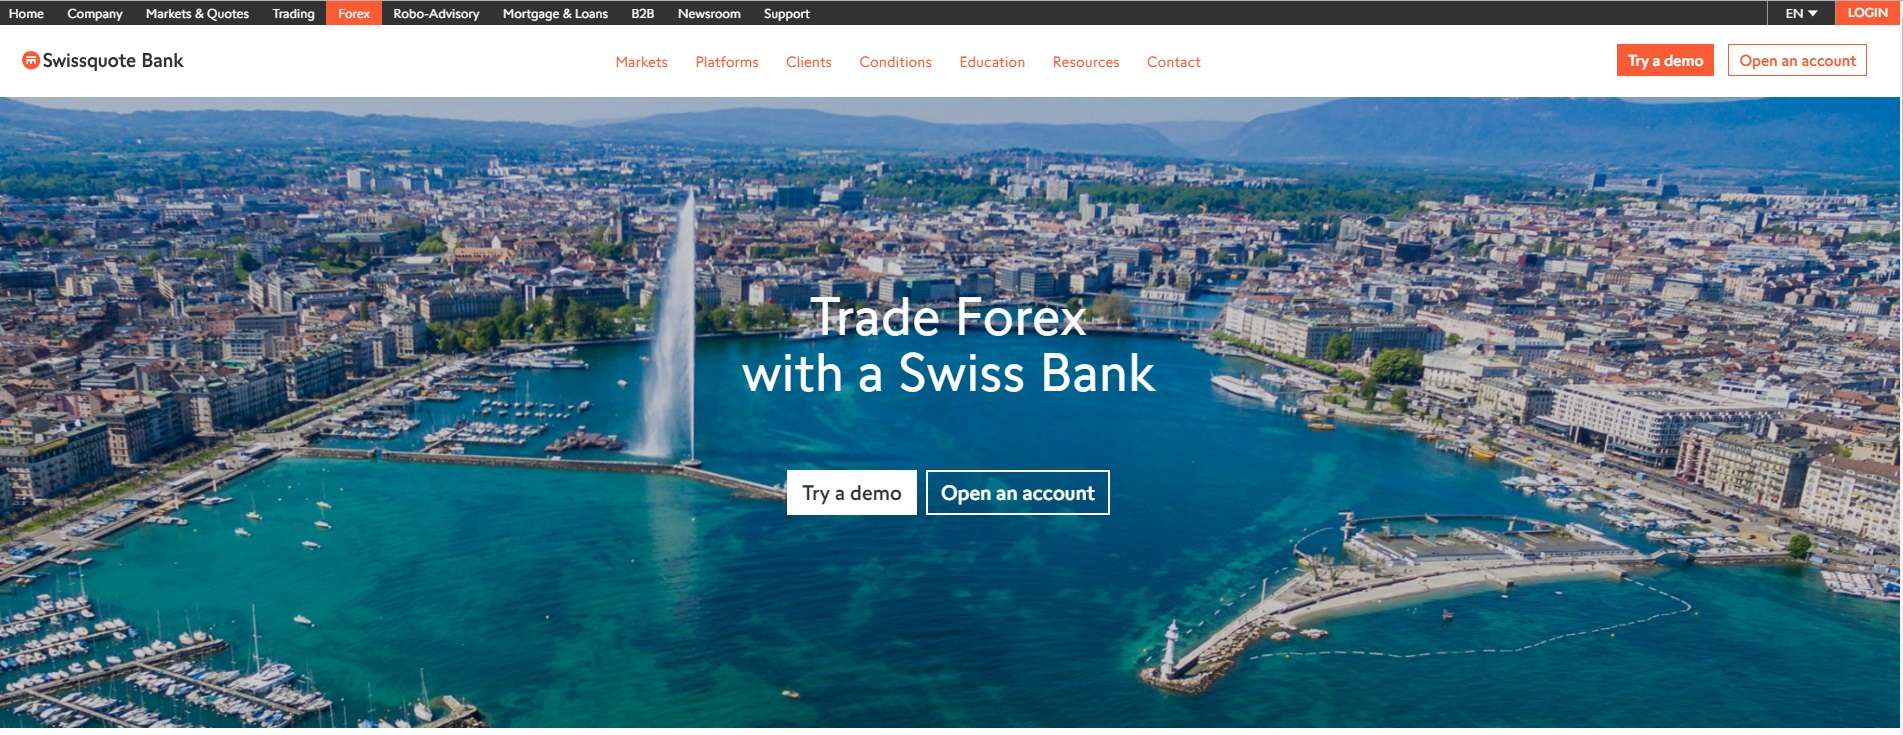 Swissquote Review - A Reliable Brokerage For Your Trading Needs